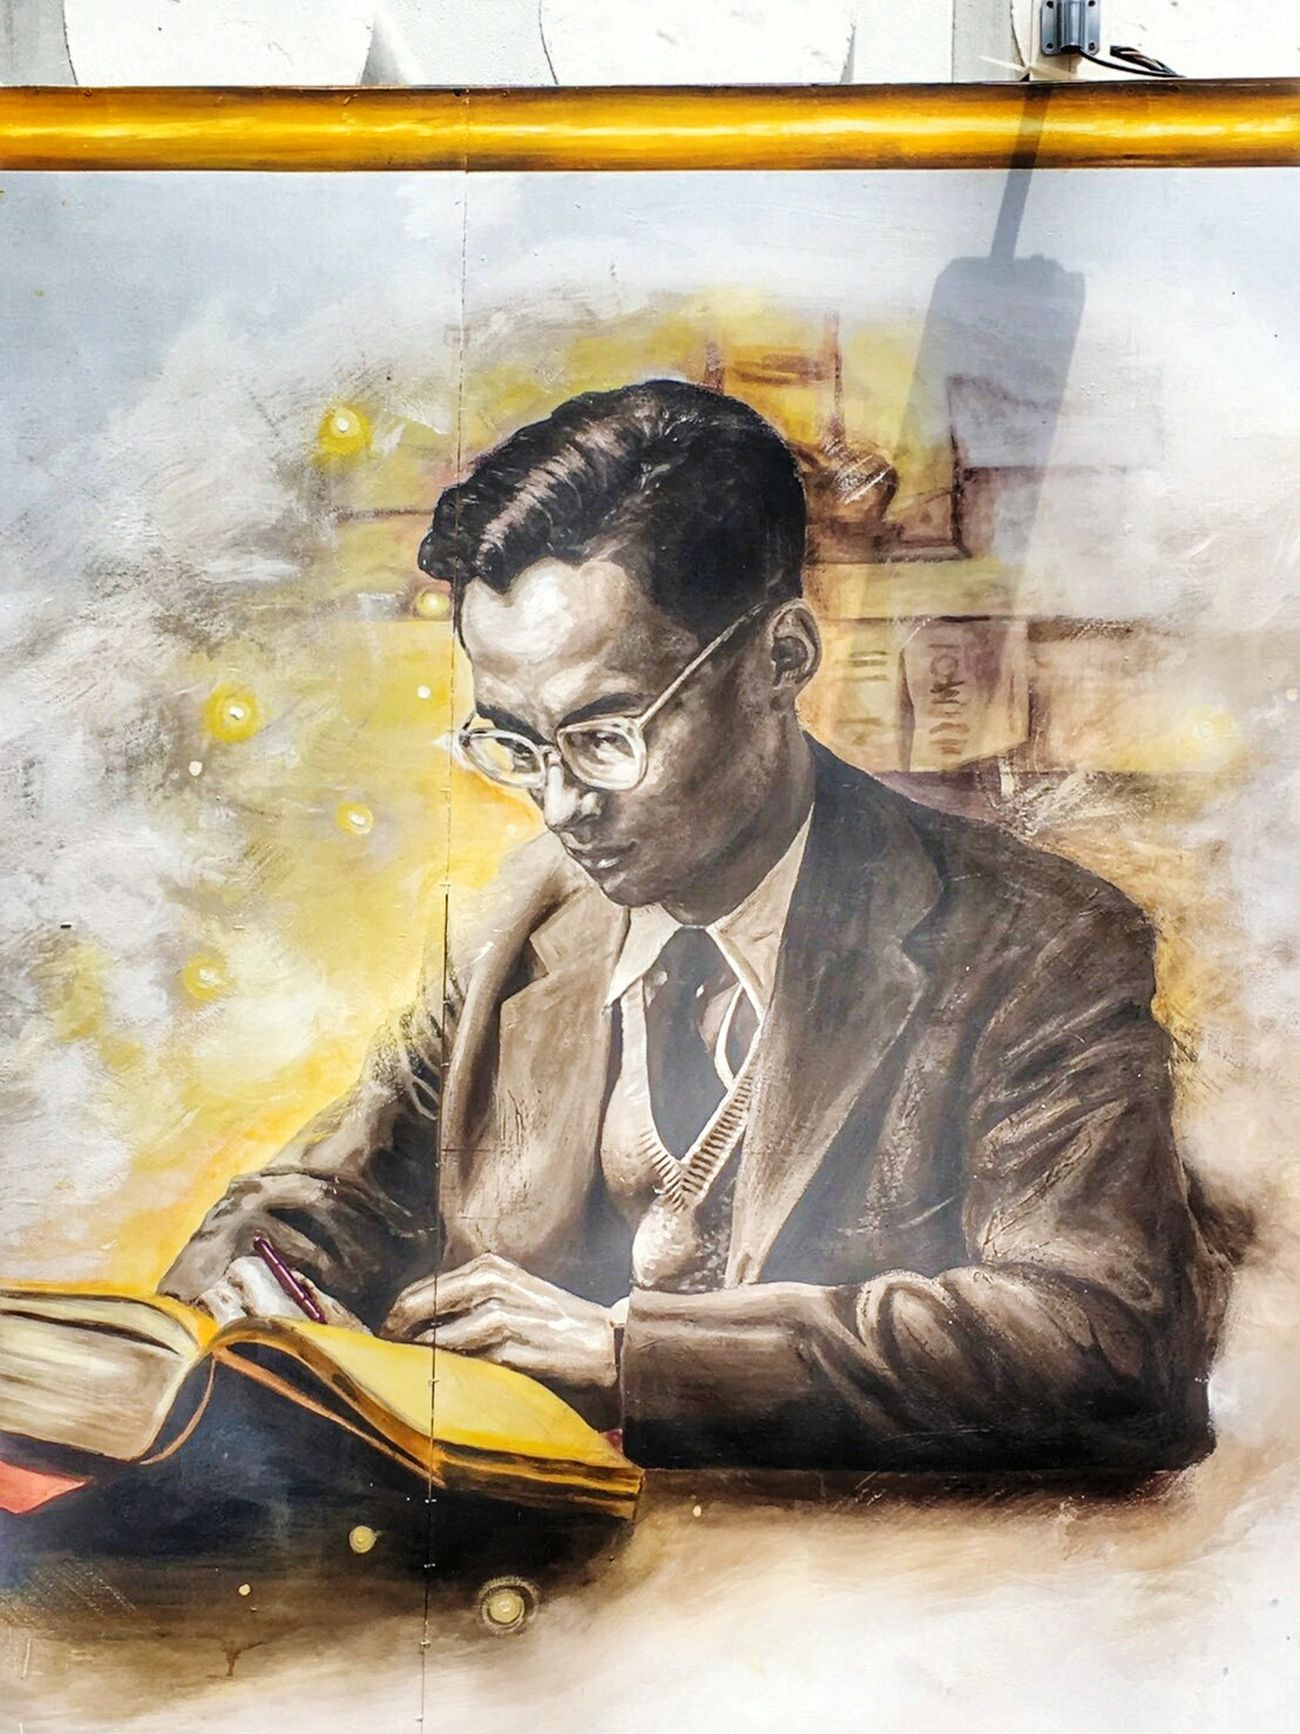 KING OF THAILAND👑💛 Thailand King Of Thailand King Rama IX